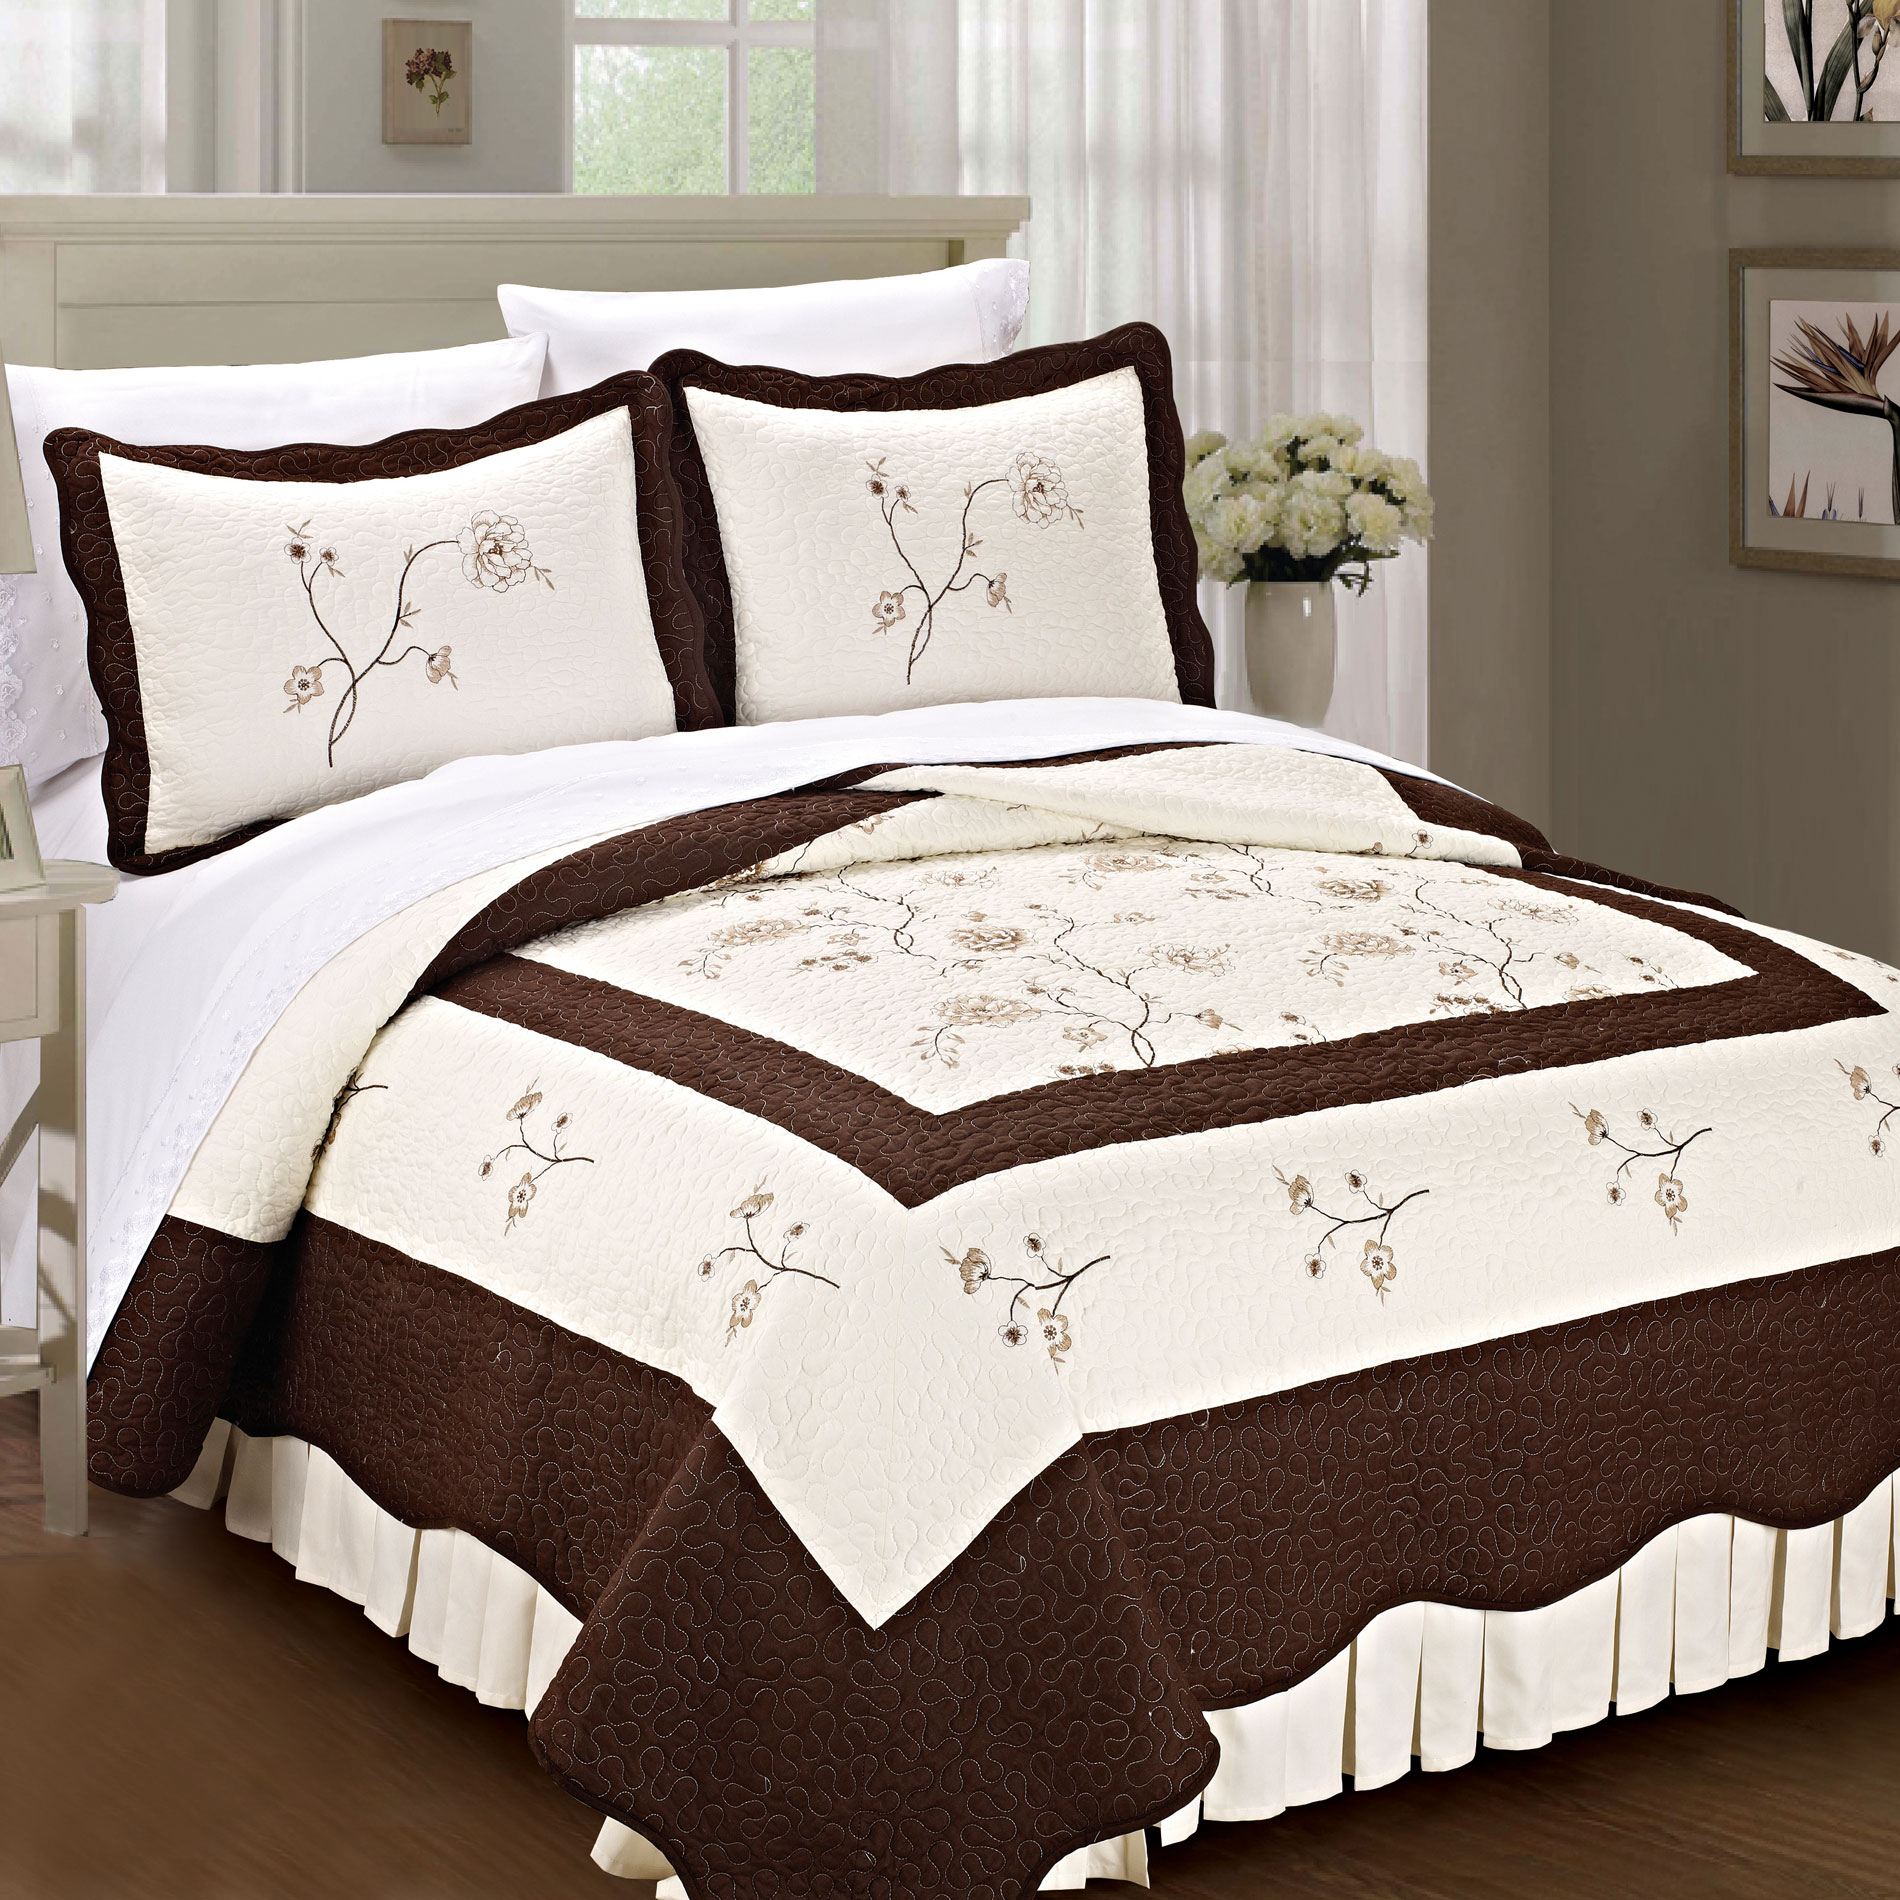 Serenta Spring Flowers Classic 3 Piece 100% Cotton Quilted Coverlet Bed Spread Set